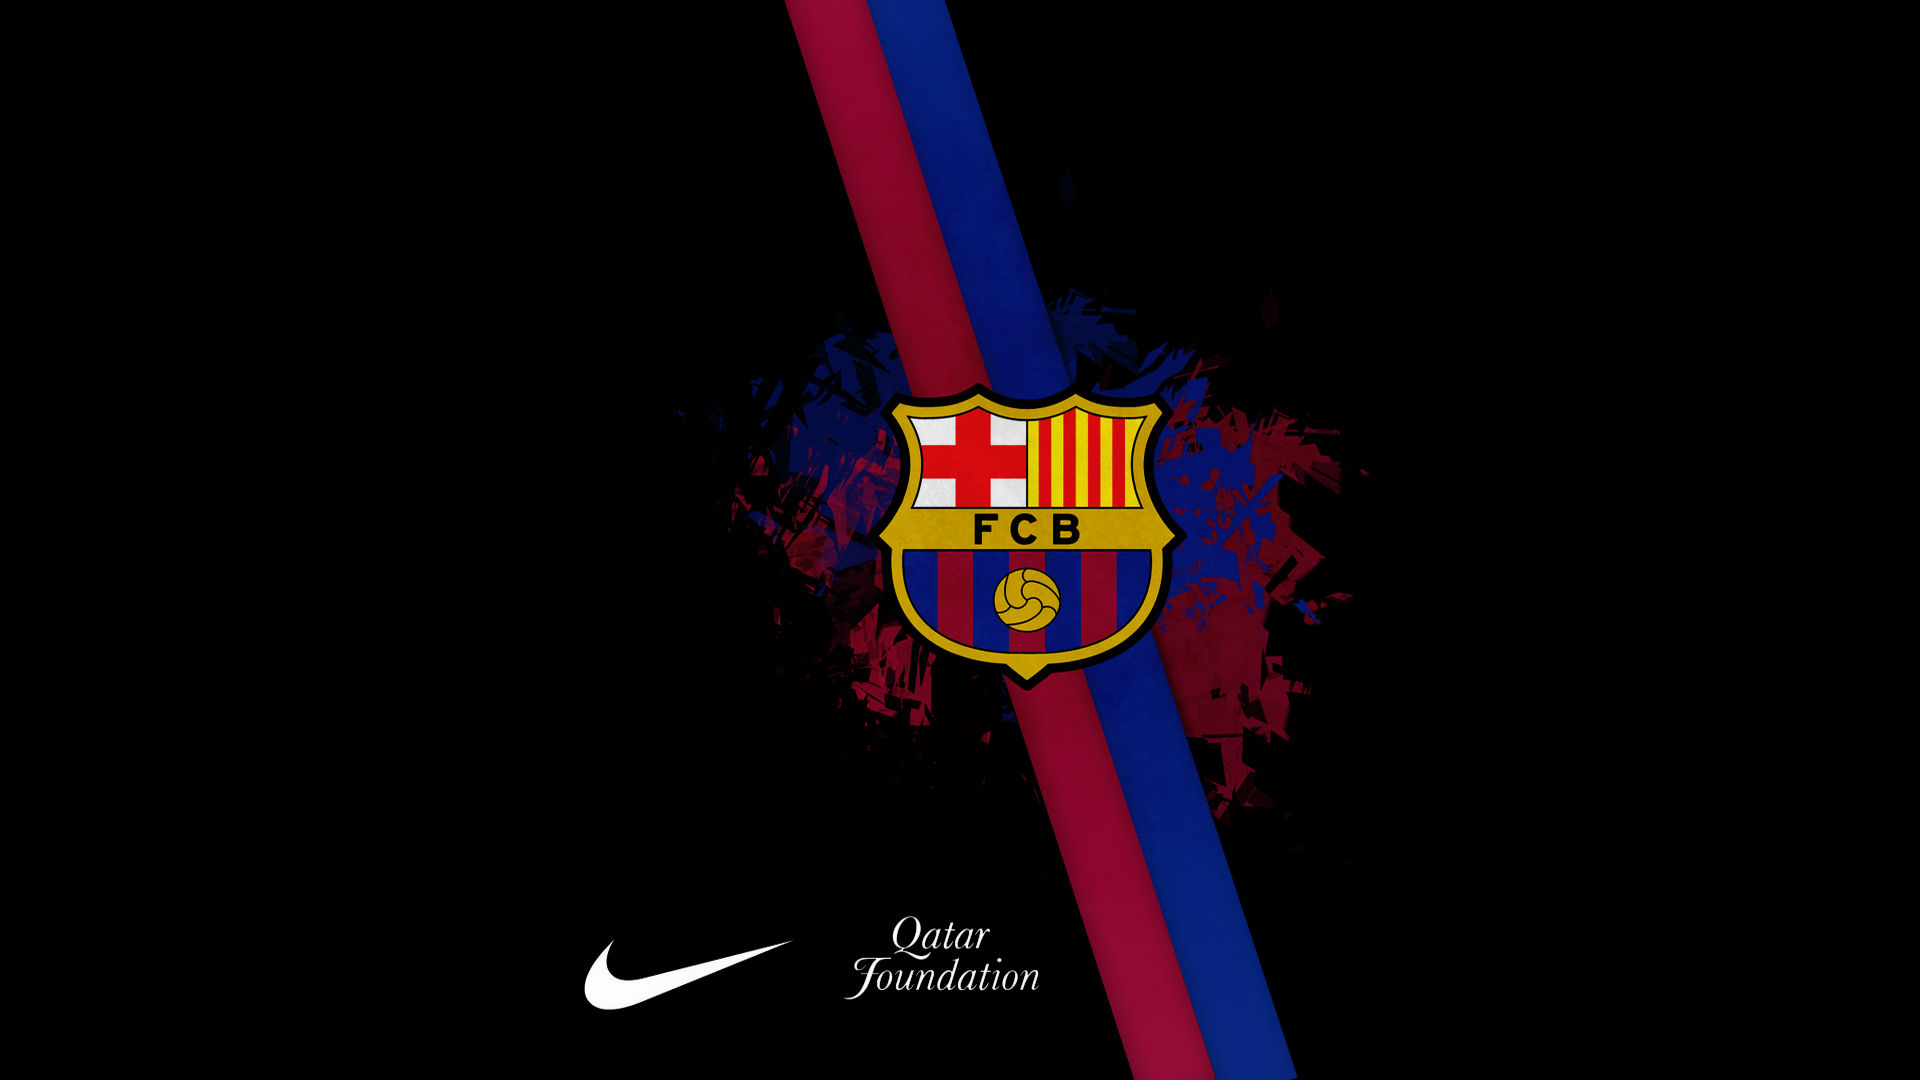 44 Fc Barcelona Wallpaper 1080p On Wallpapersafari